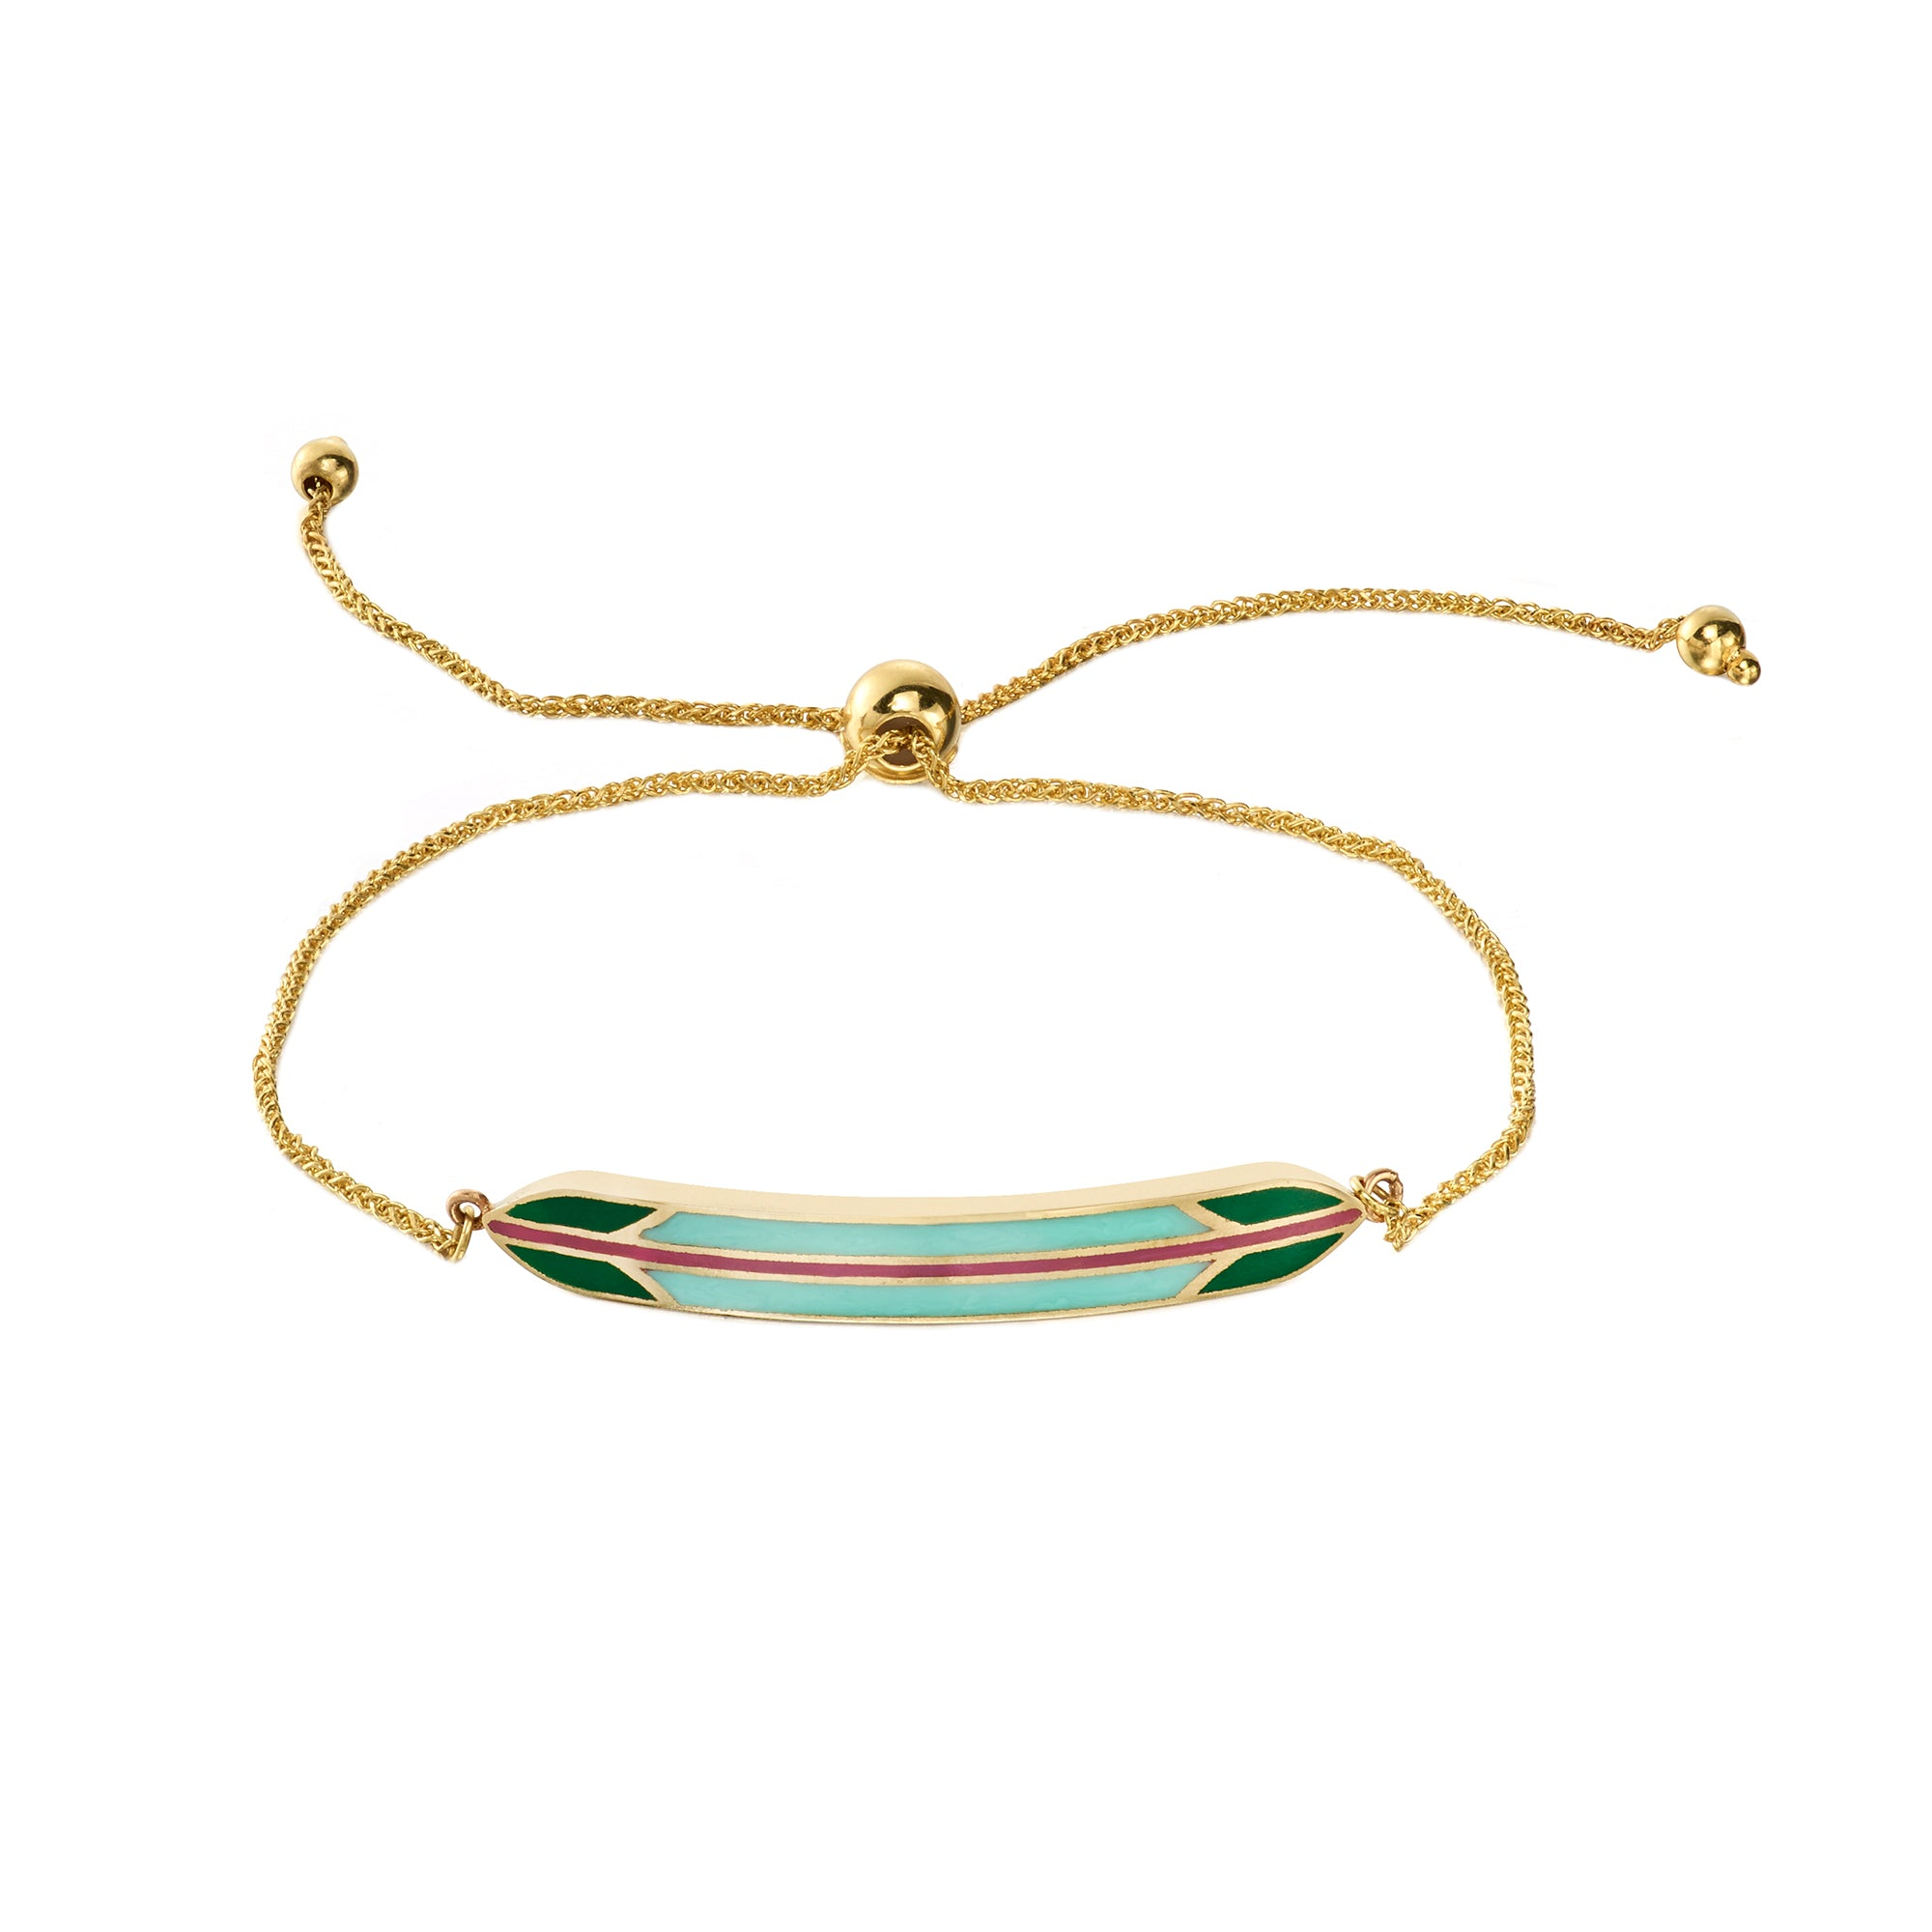 Green Surf Leash Bracelet by Tara Hirshberg for Broken English Jewelry